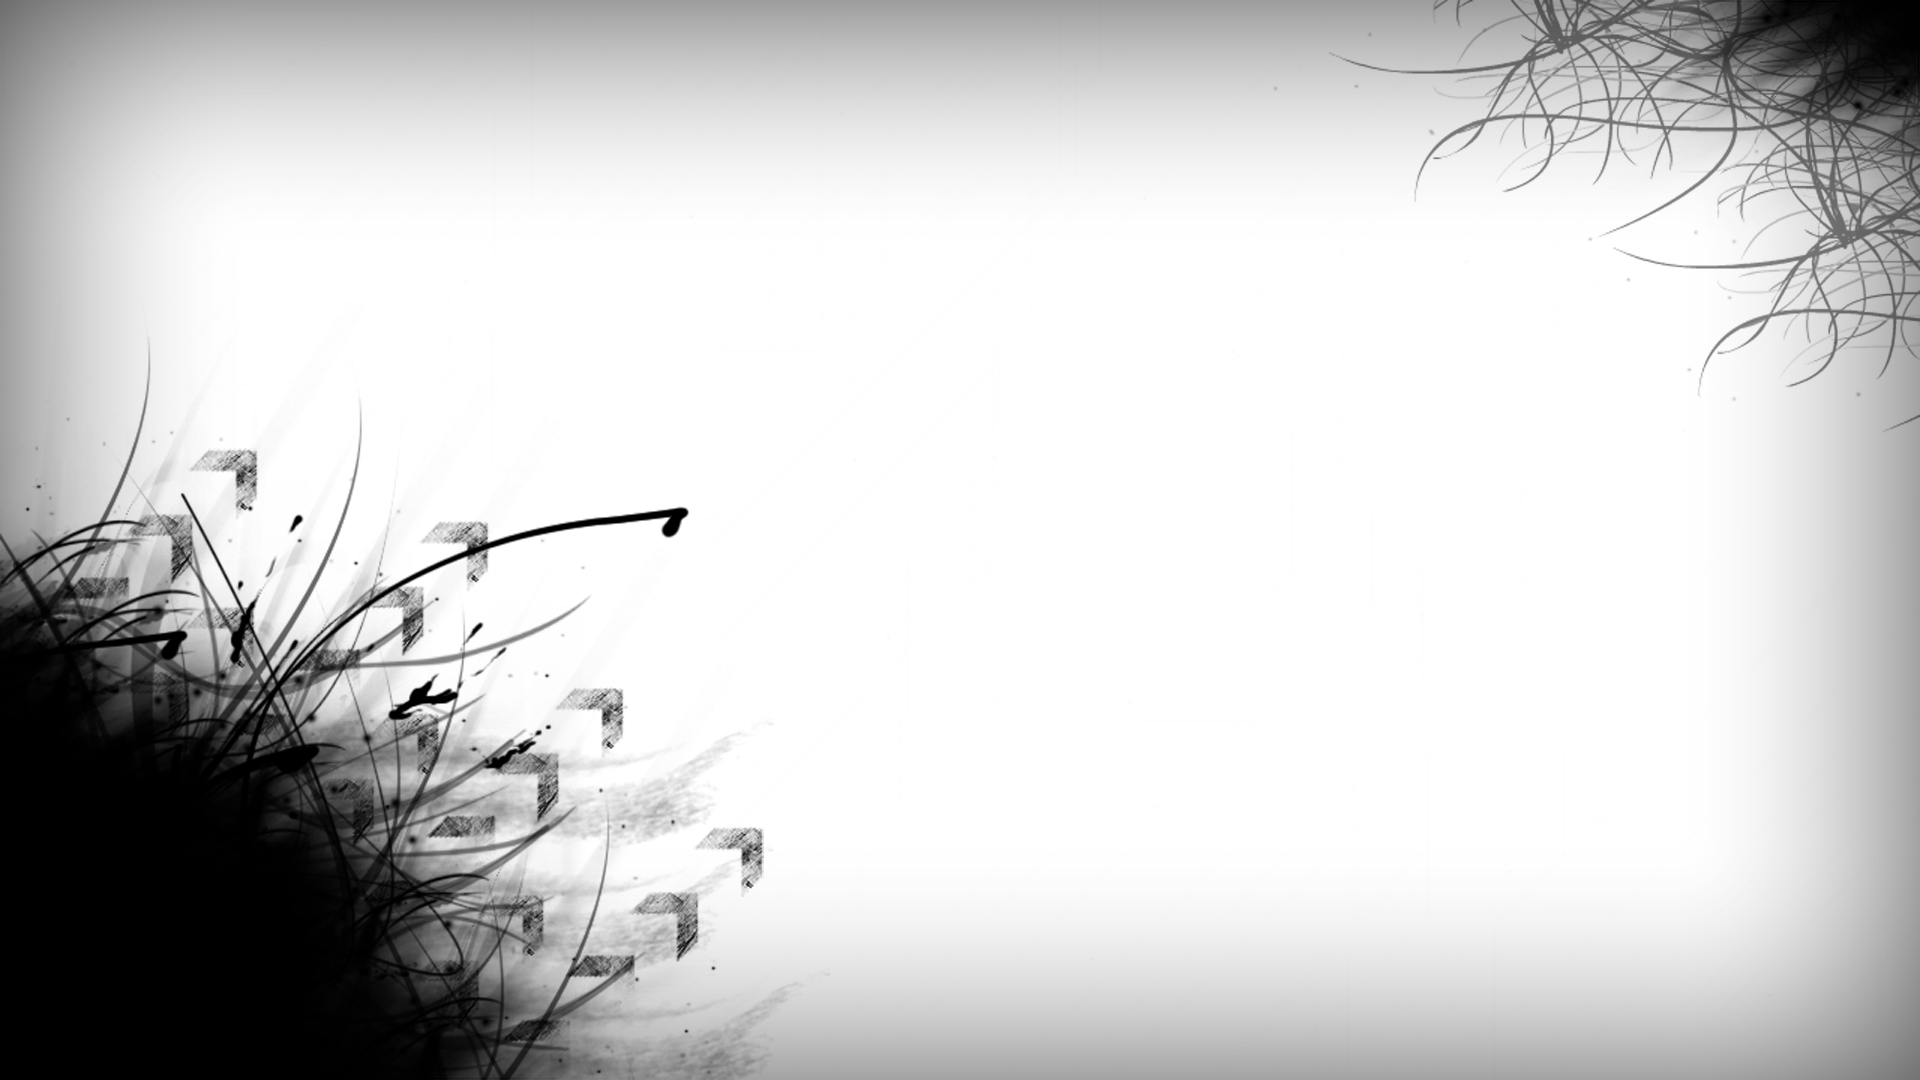 Background Wallpaper Black And White